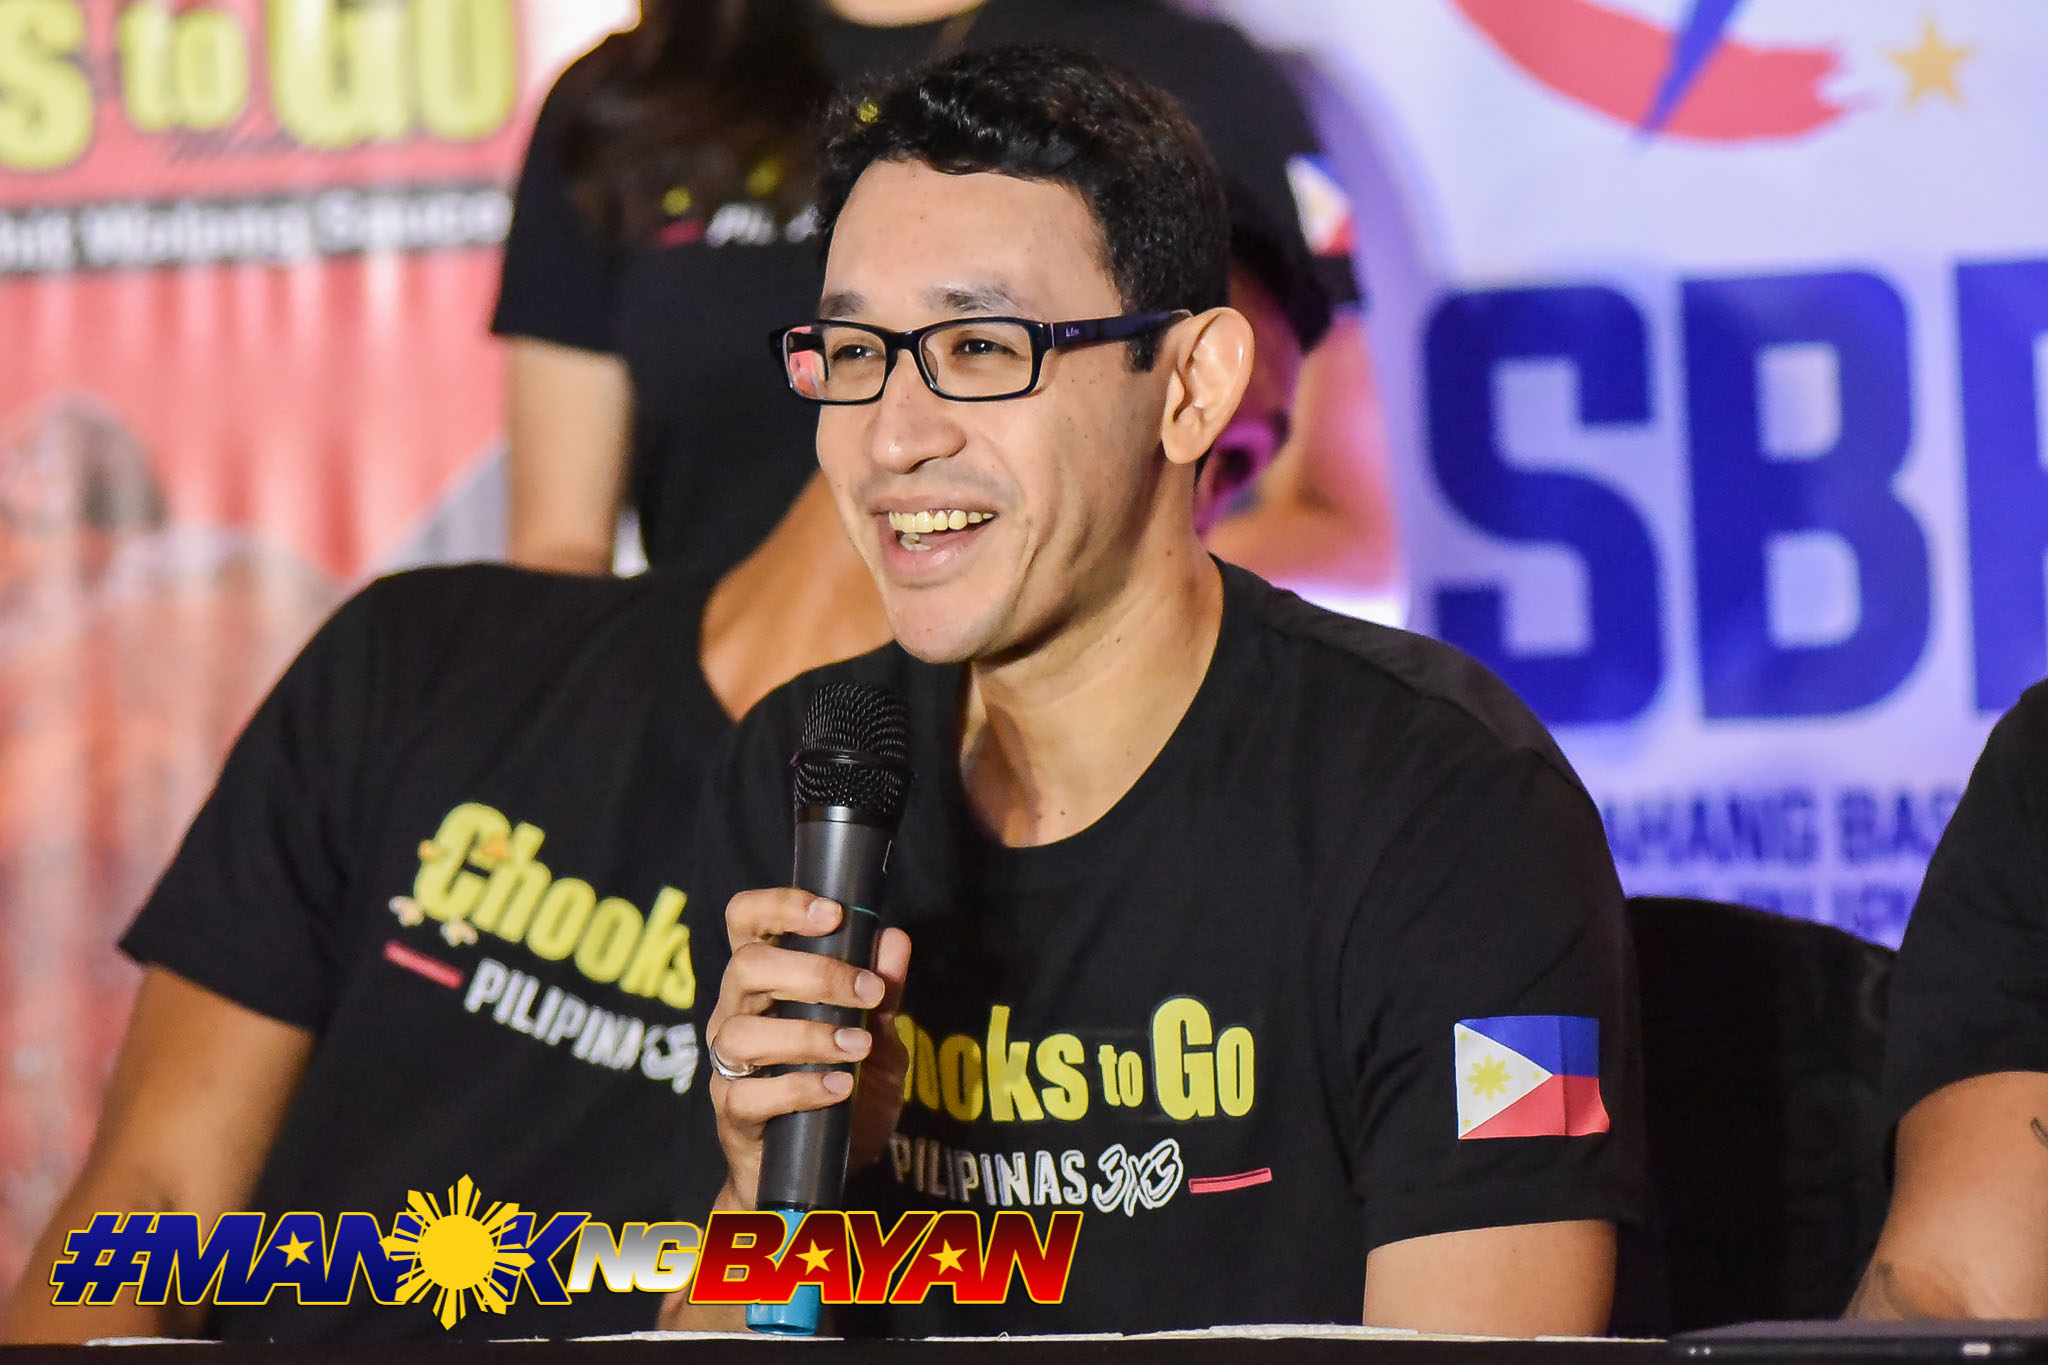 Tiebreaker Times Dylan Ababou relishes OQT chance seven years after Gilas 1.0 stint 3x3 Basketball Chooks-to-Go Pilipinas 3x3 News  Dylan Ababou 2020 FIBA 3X3 Olympic Qualifying Tournament 2019 Chooks-to-Go Pilipinas 3x3 Season